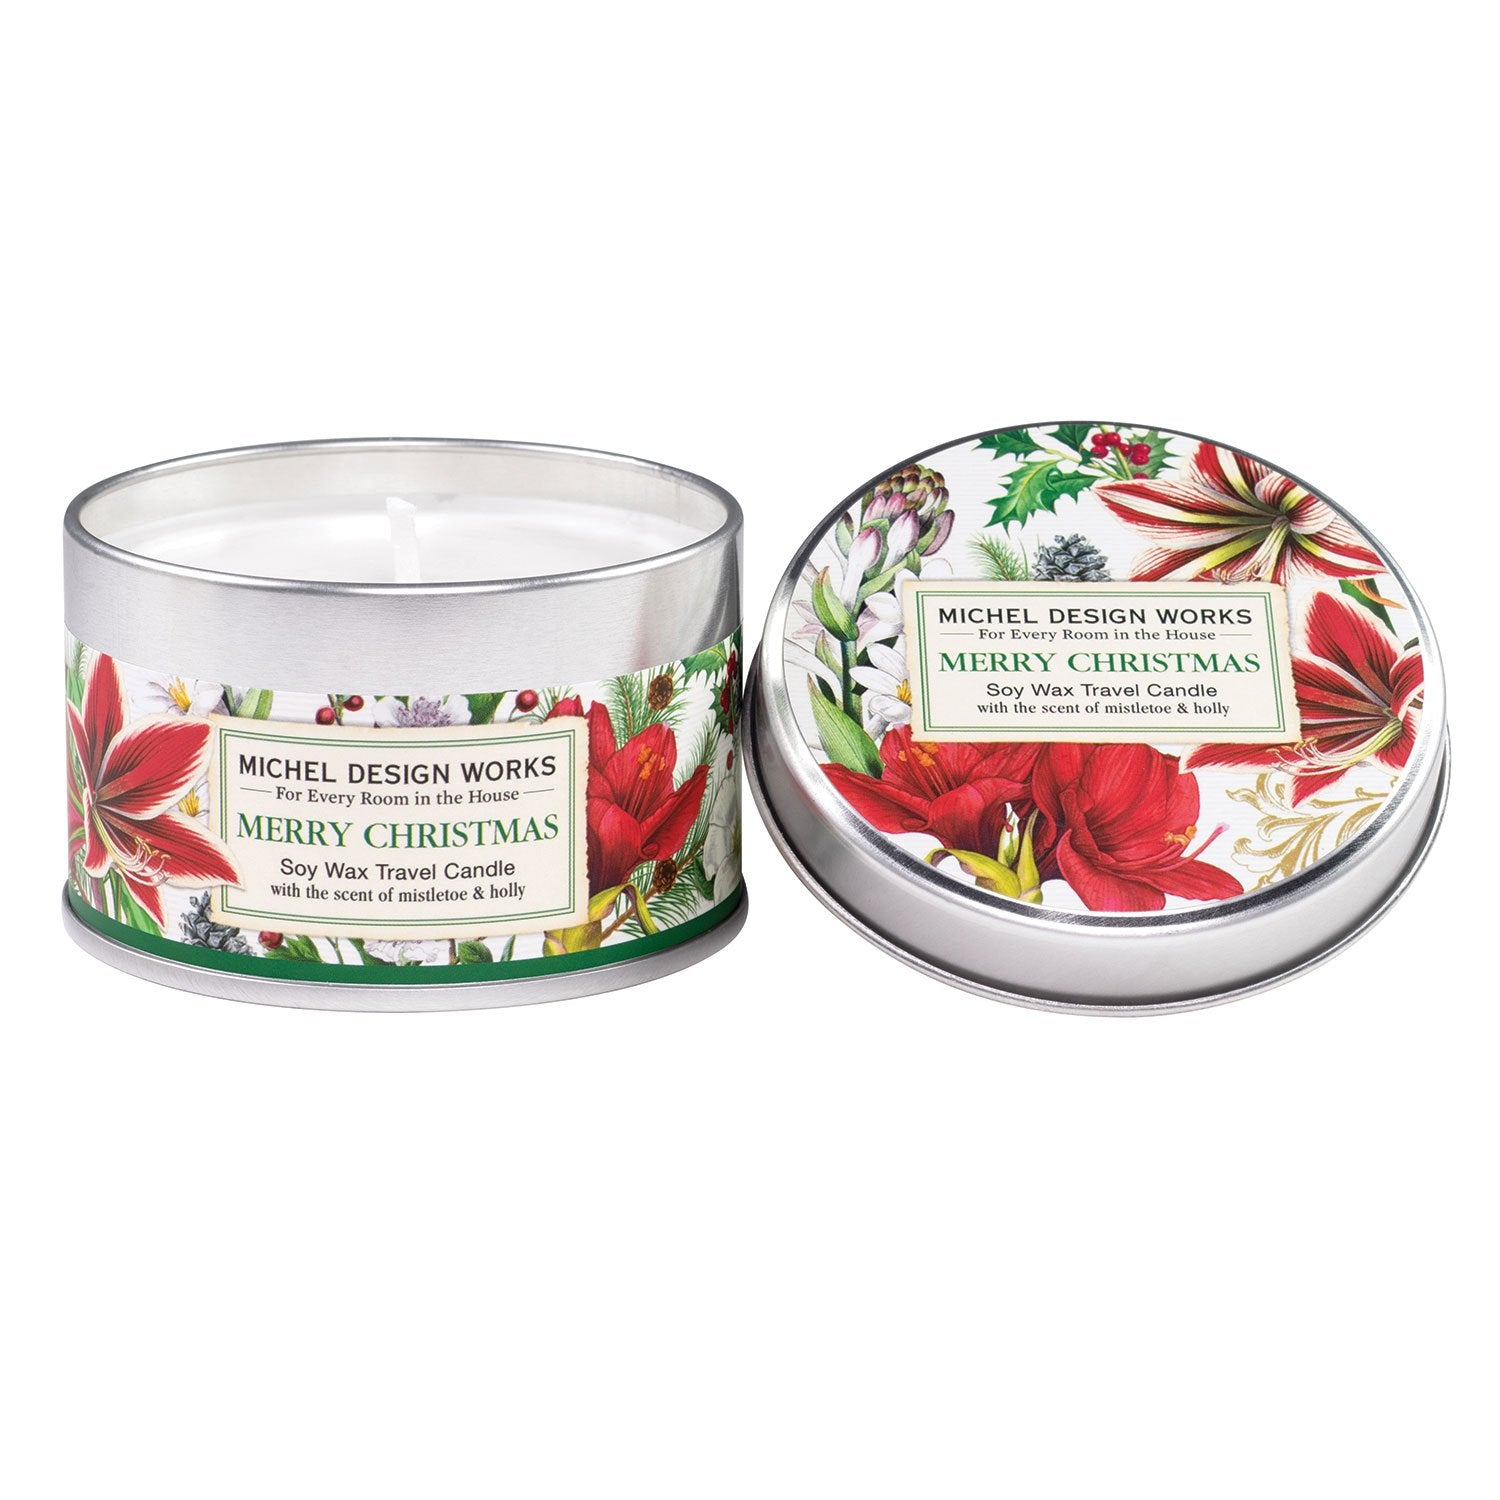 Merry Christmas Travel Candle